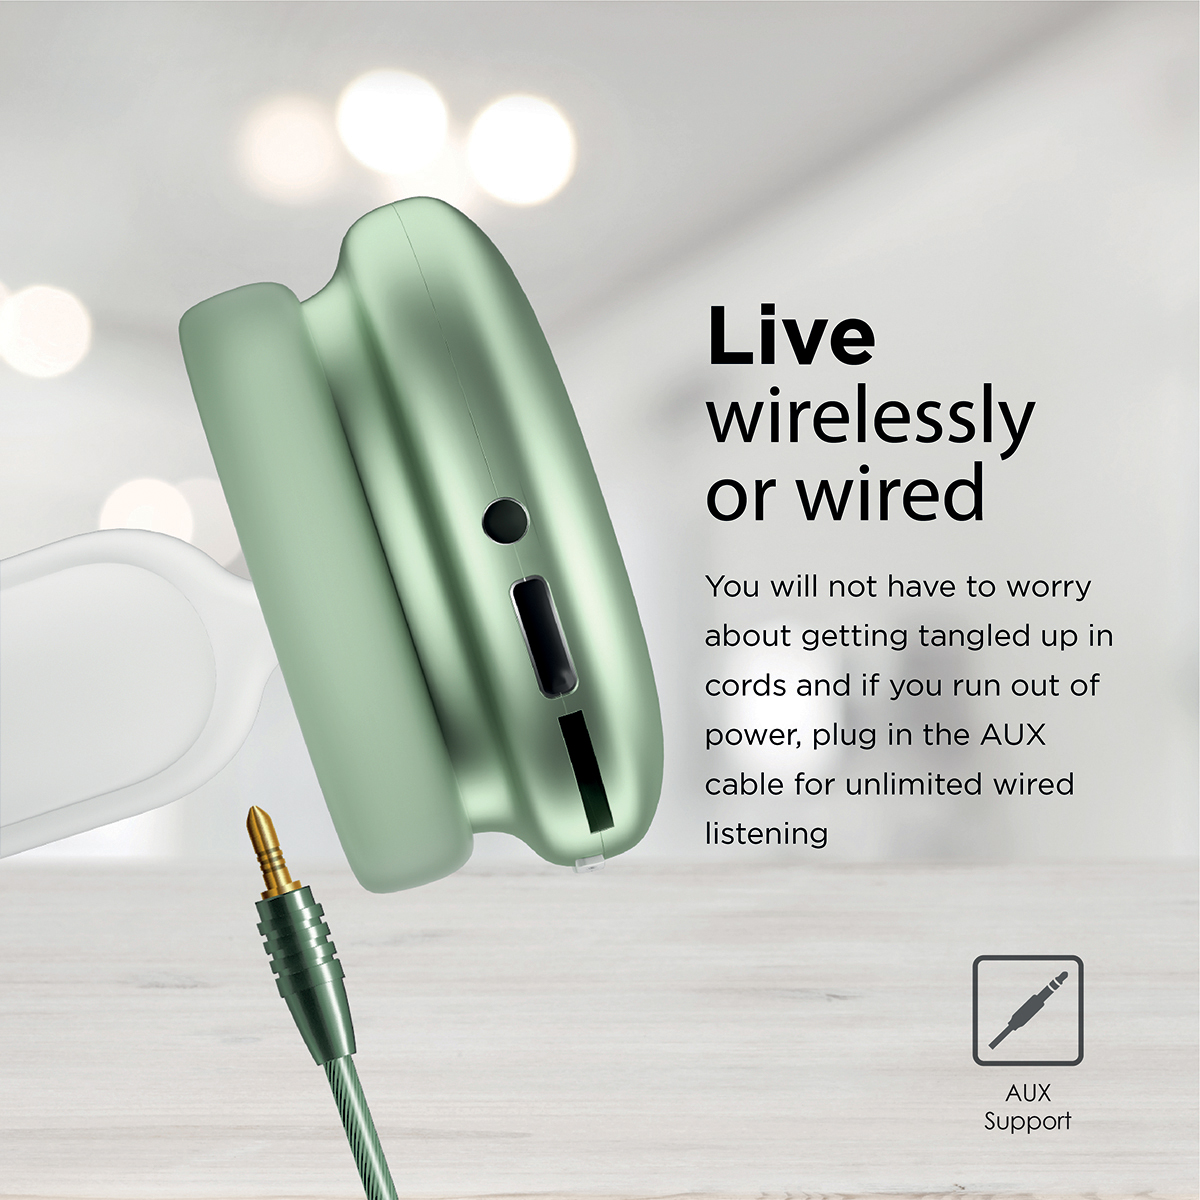 Promate Wireless Bluetooth Headphones, Ergonomic Over-Ear Adjustable Bluetooth 5.0 Headset with Mic, FM Radio, TF Card Slot and Wired Mode 3.5mm Jack for iPhone 12, Gym, Travel, Office, AirBeat Midnight Green